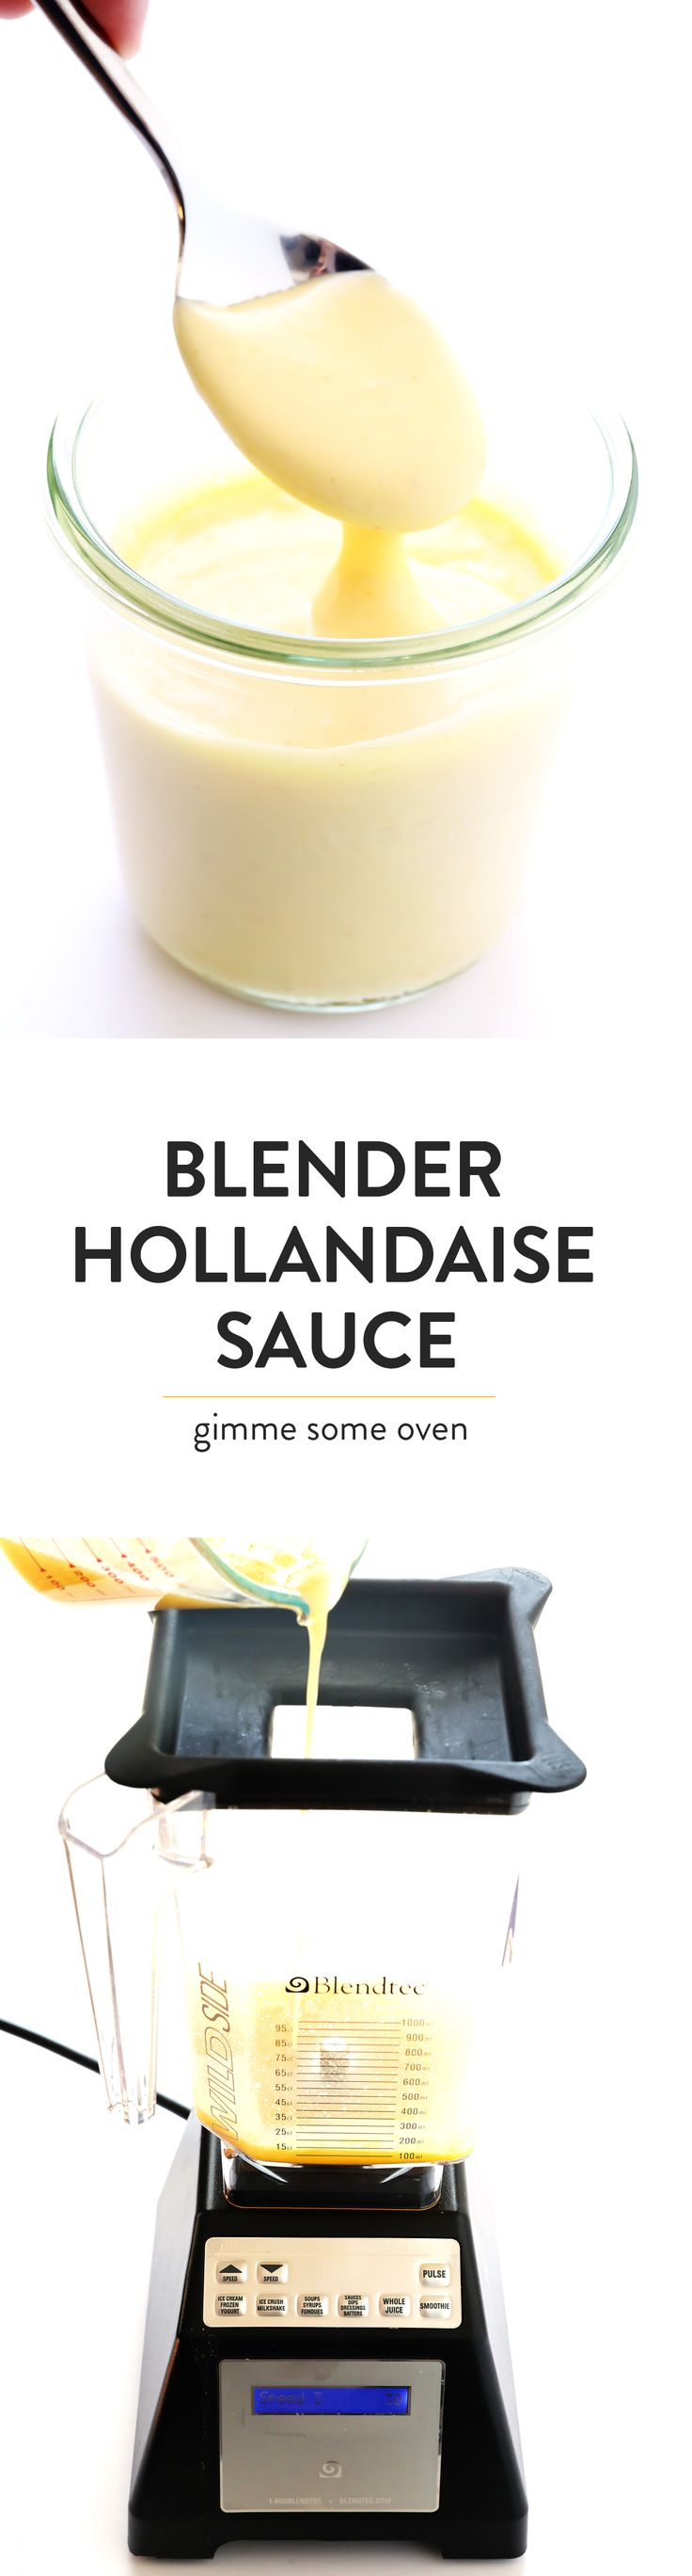 This Blender Hollandaise Sauce only takes about 5 minutes to make, and is perfectly creamy and delicious! Perfect for drizzling over Eggs Benedict, veggies, or whatever sounds good for brunch!   gimmesomeoven.com